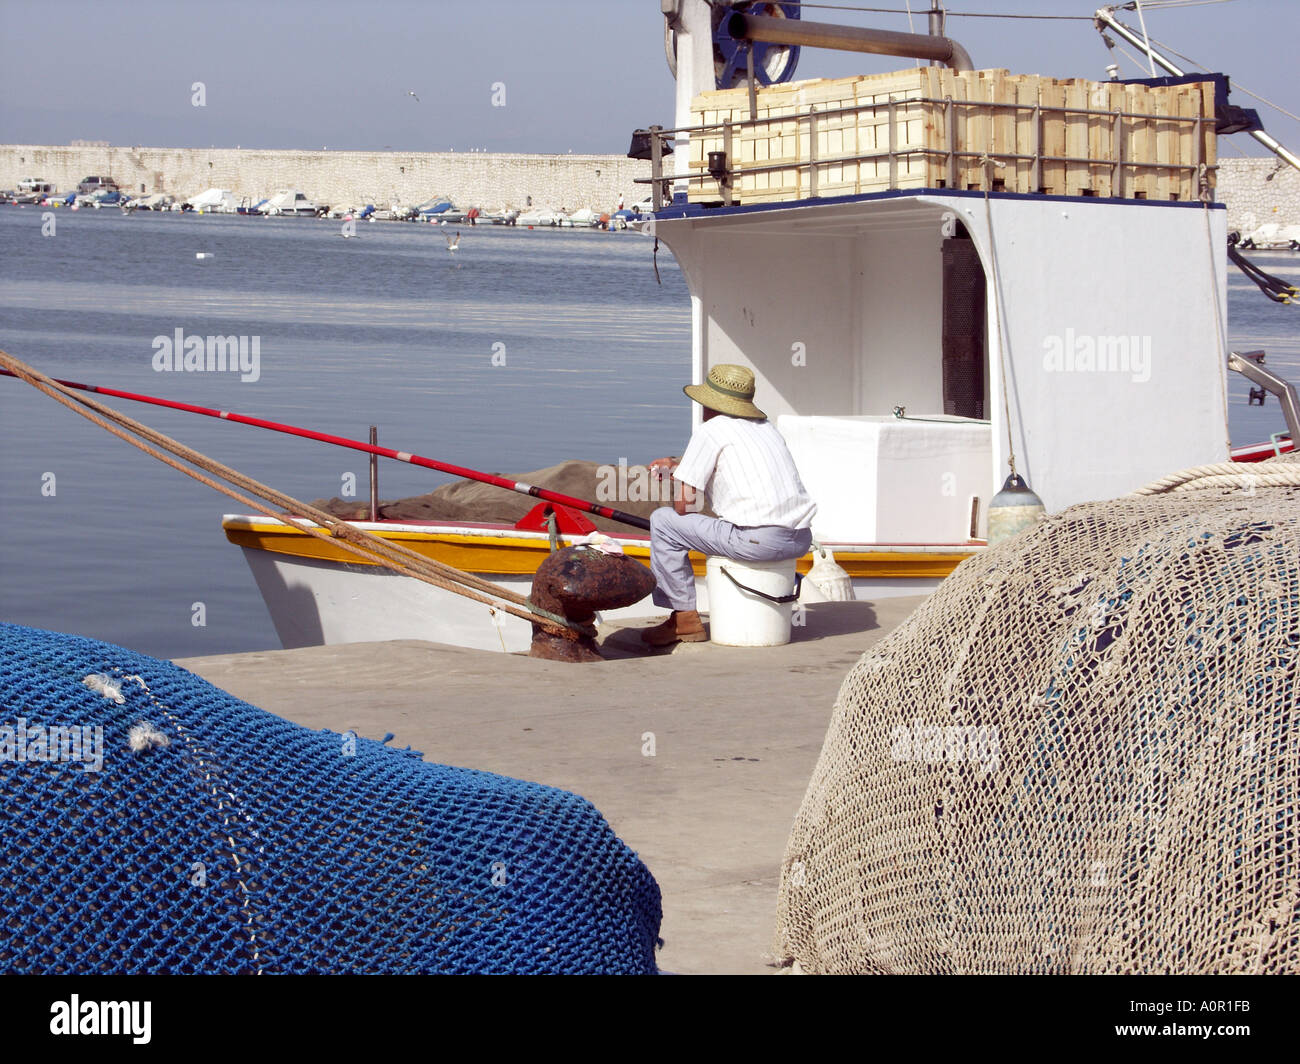 Angler Fishing with Rod and Line next to a Commercial Fishing Boat, Puerto Deportivo de Fuengirola, Fuengirola Port, - Stock Image